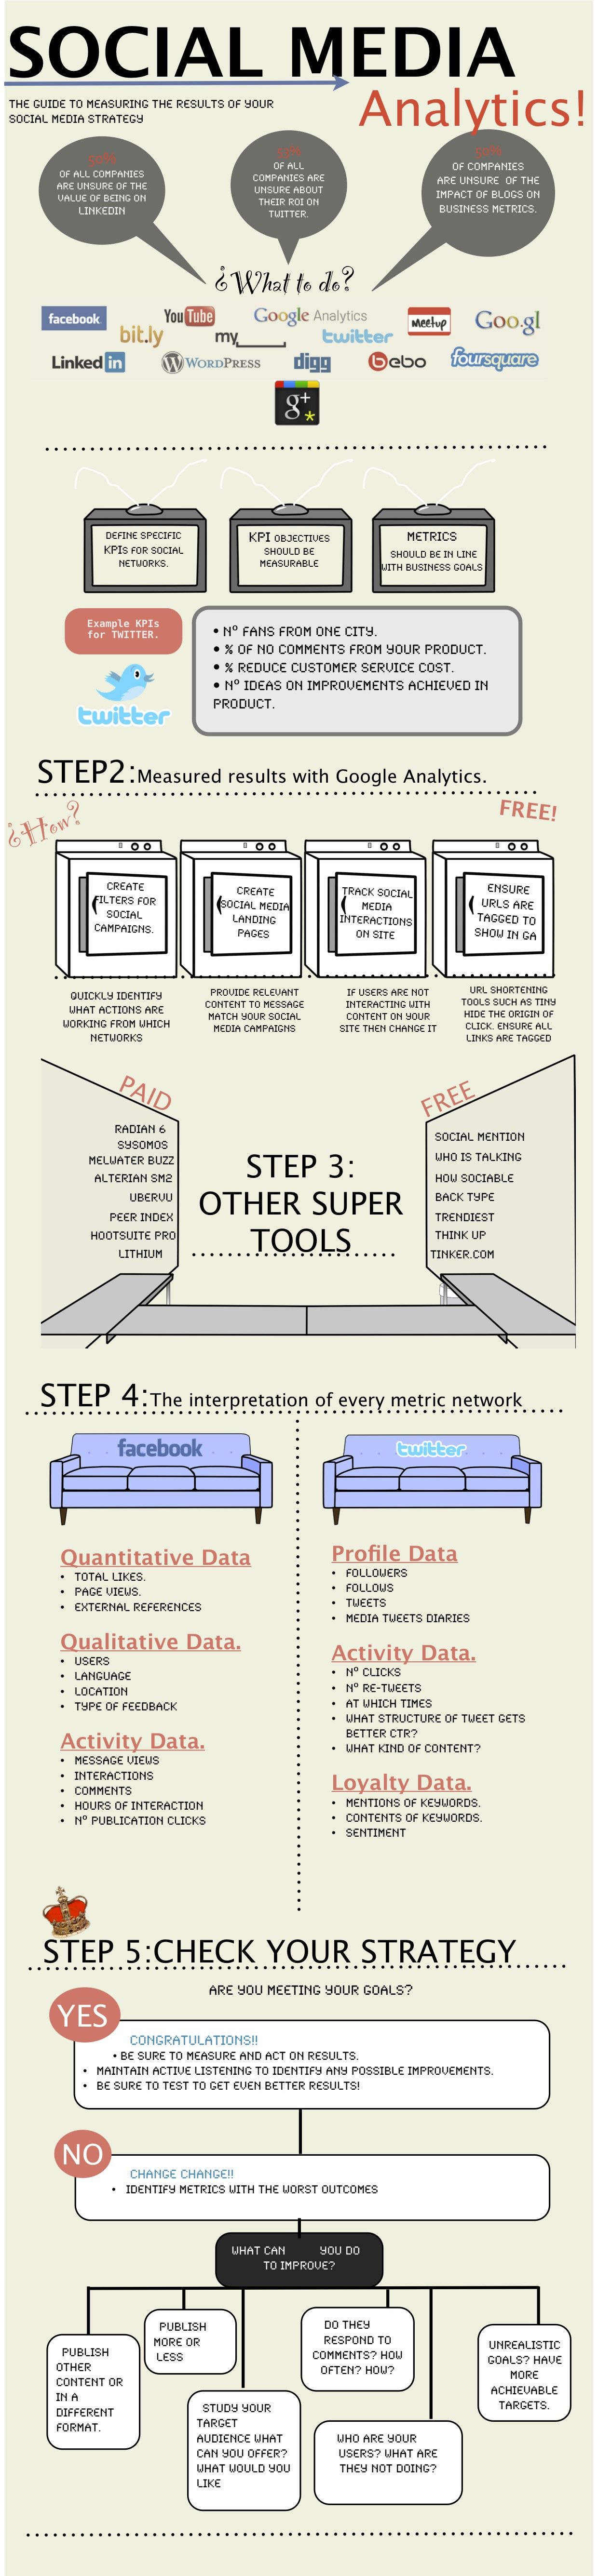 social media analytics ! The Guide to measure the results of your social media strategy